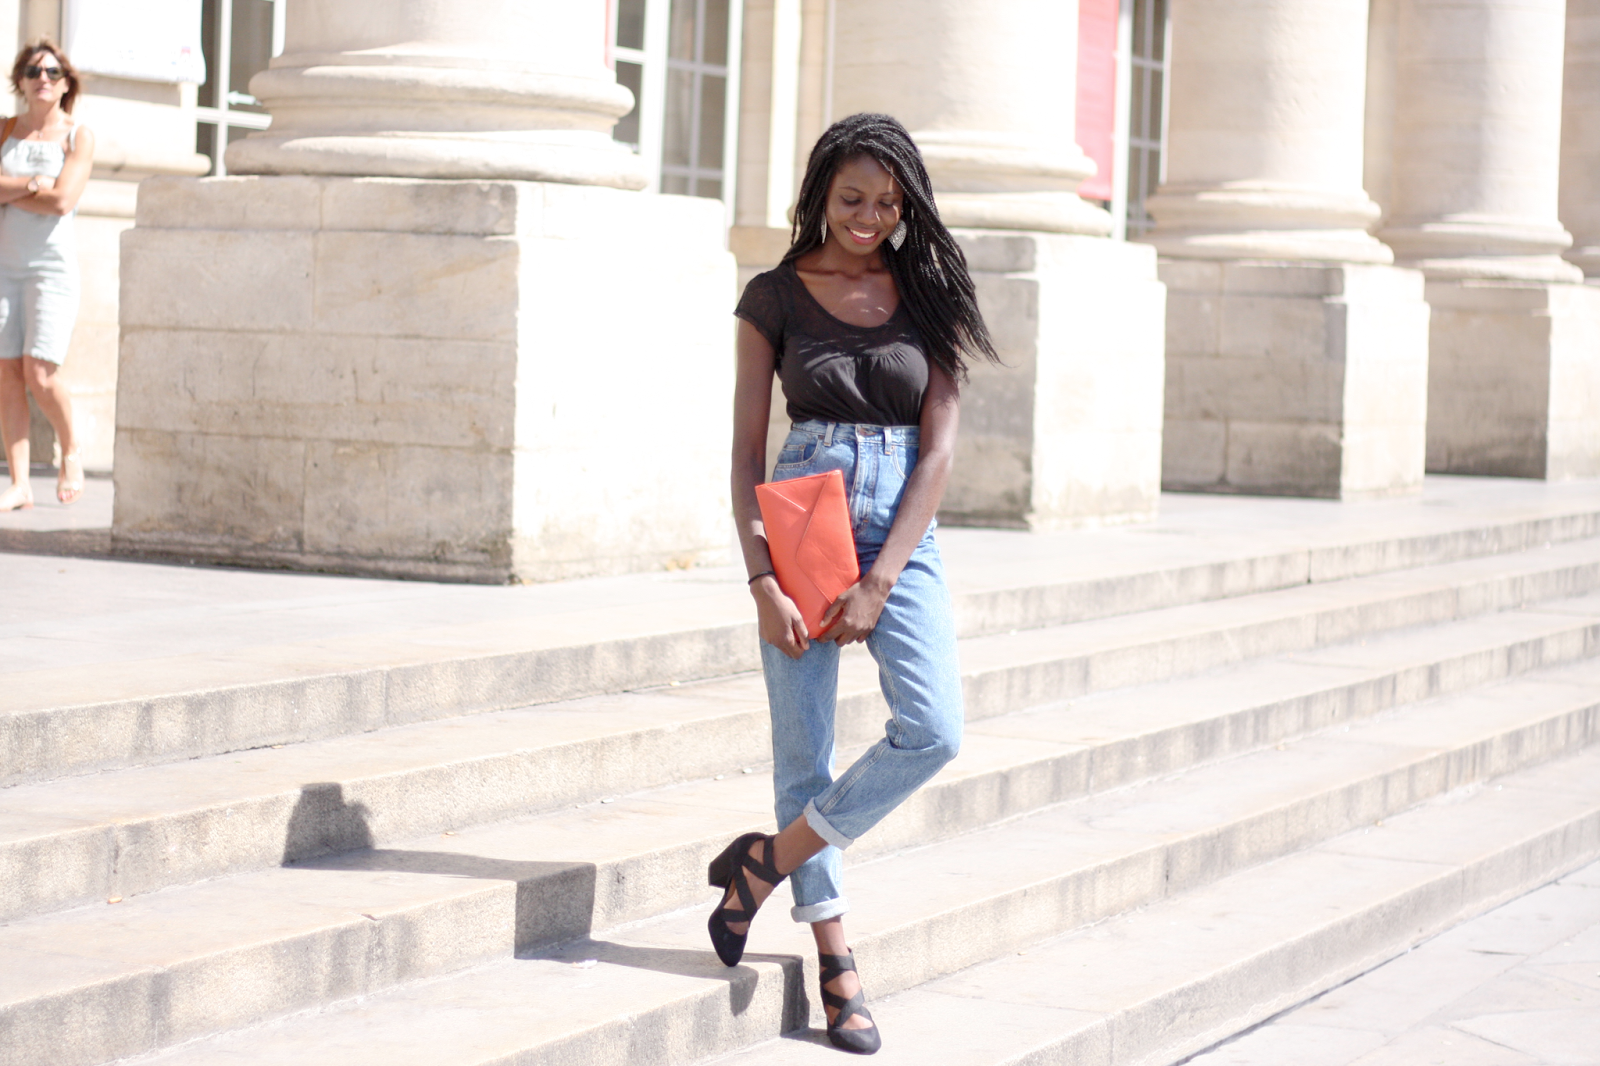 blog mode, blog mode bordeaux, blogueuse mode bordelaisen, tenue du jour, vintage jean, miss selfridge shoes, french fashion blogger, blogger, blogueuses mode, blogueuse mode noire, olivia bordeaux, olivia blogueuse, olivia blogueuse mode, orange, black, jean, grand théâtre, grand théâtre bordeaux, place de la comédie, place de la comédie bordeaux